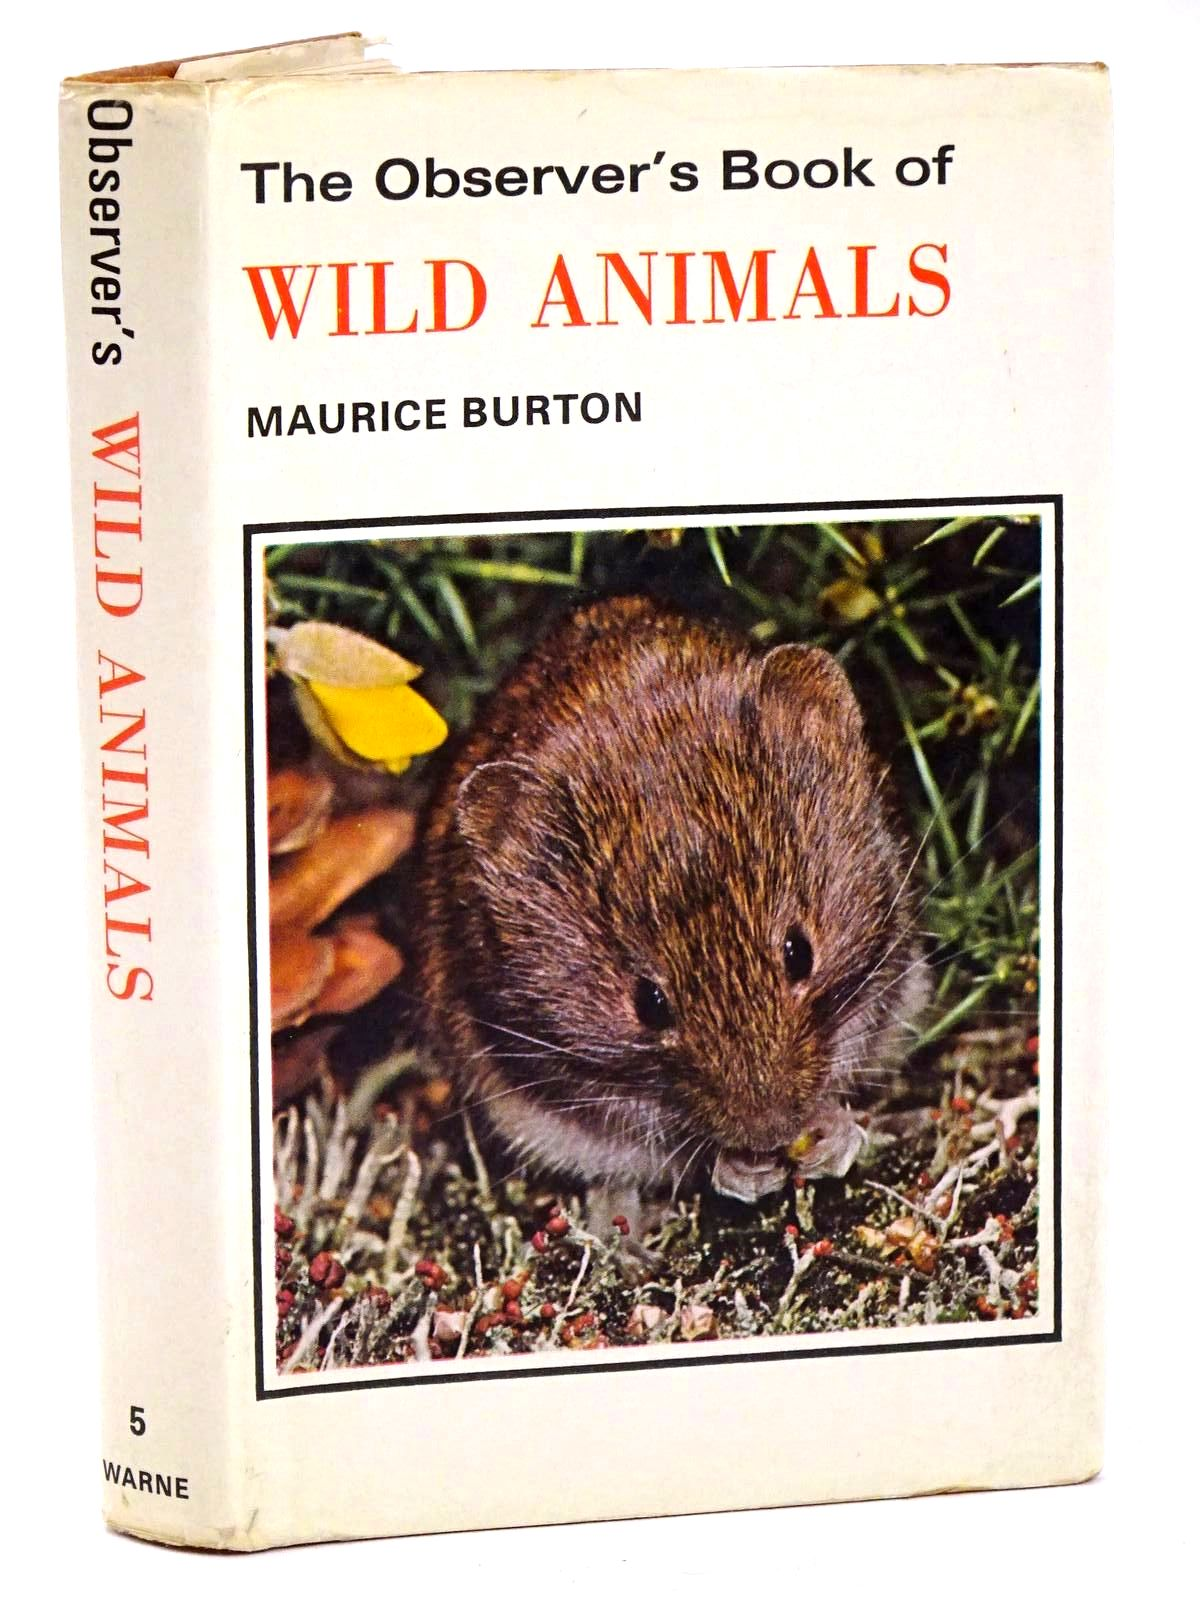 Photo of THE OBSERVER'S BOOK OF WILD ANIMALS written by Burton, Maurice published by Frederick Warne & Co Ltd. (STOCK CODE: 1318407)  for sale by Stella & Rose's Books